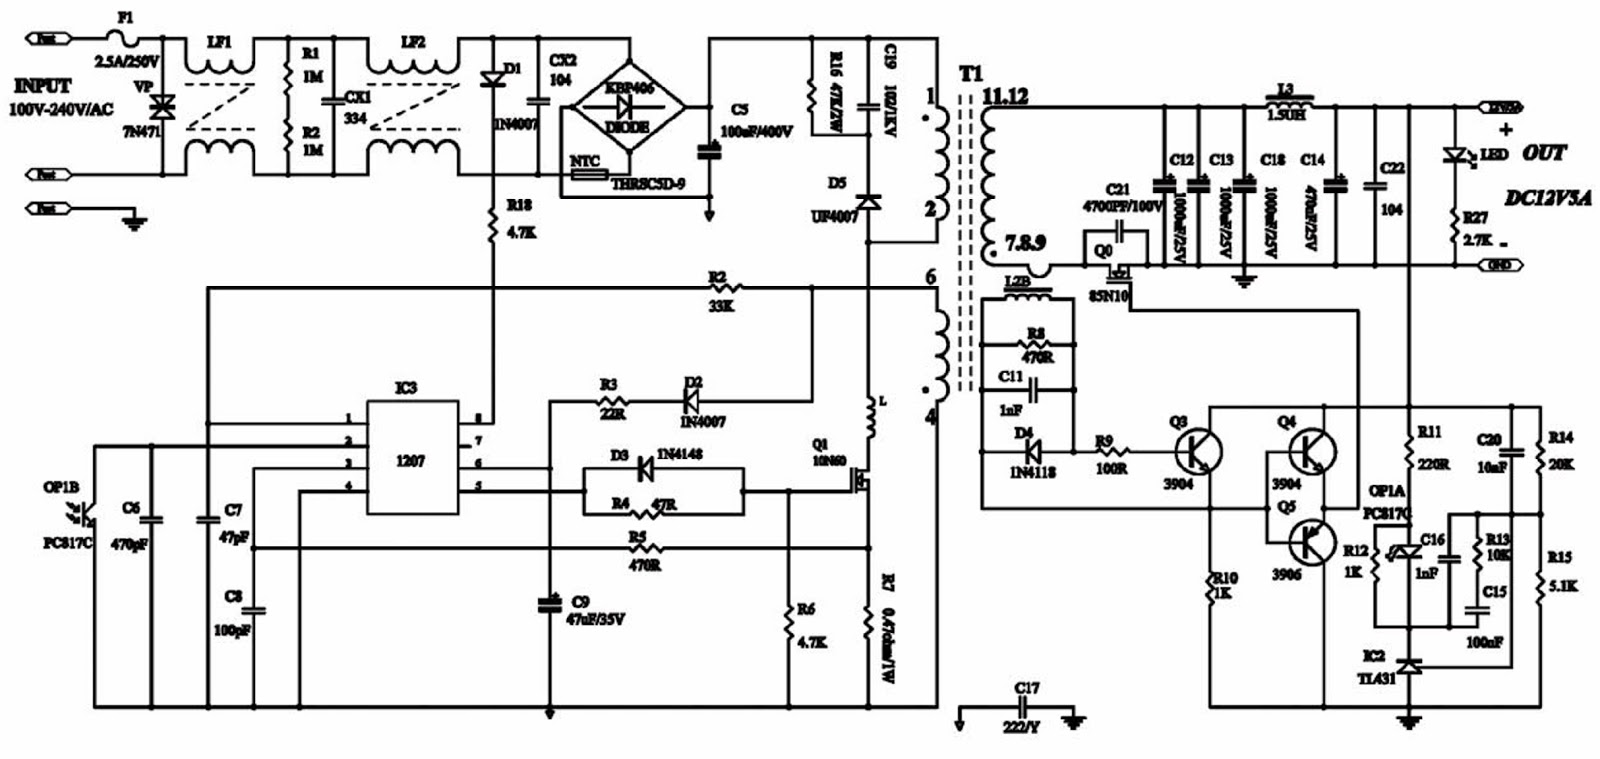 Lct 20kx01lst akira lcd tv back light inverter power adapter lct 20kx01lst akira lcd tv back light inverter power adapter schematic circuit diagram asfbconference2016 Images